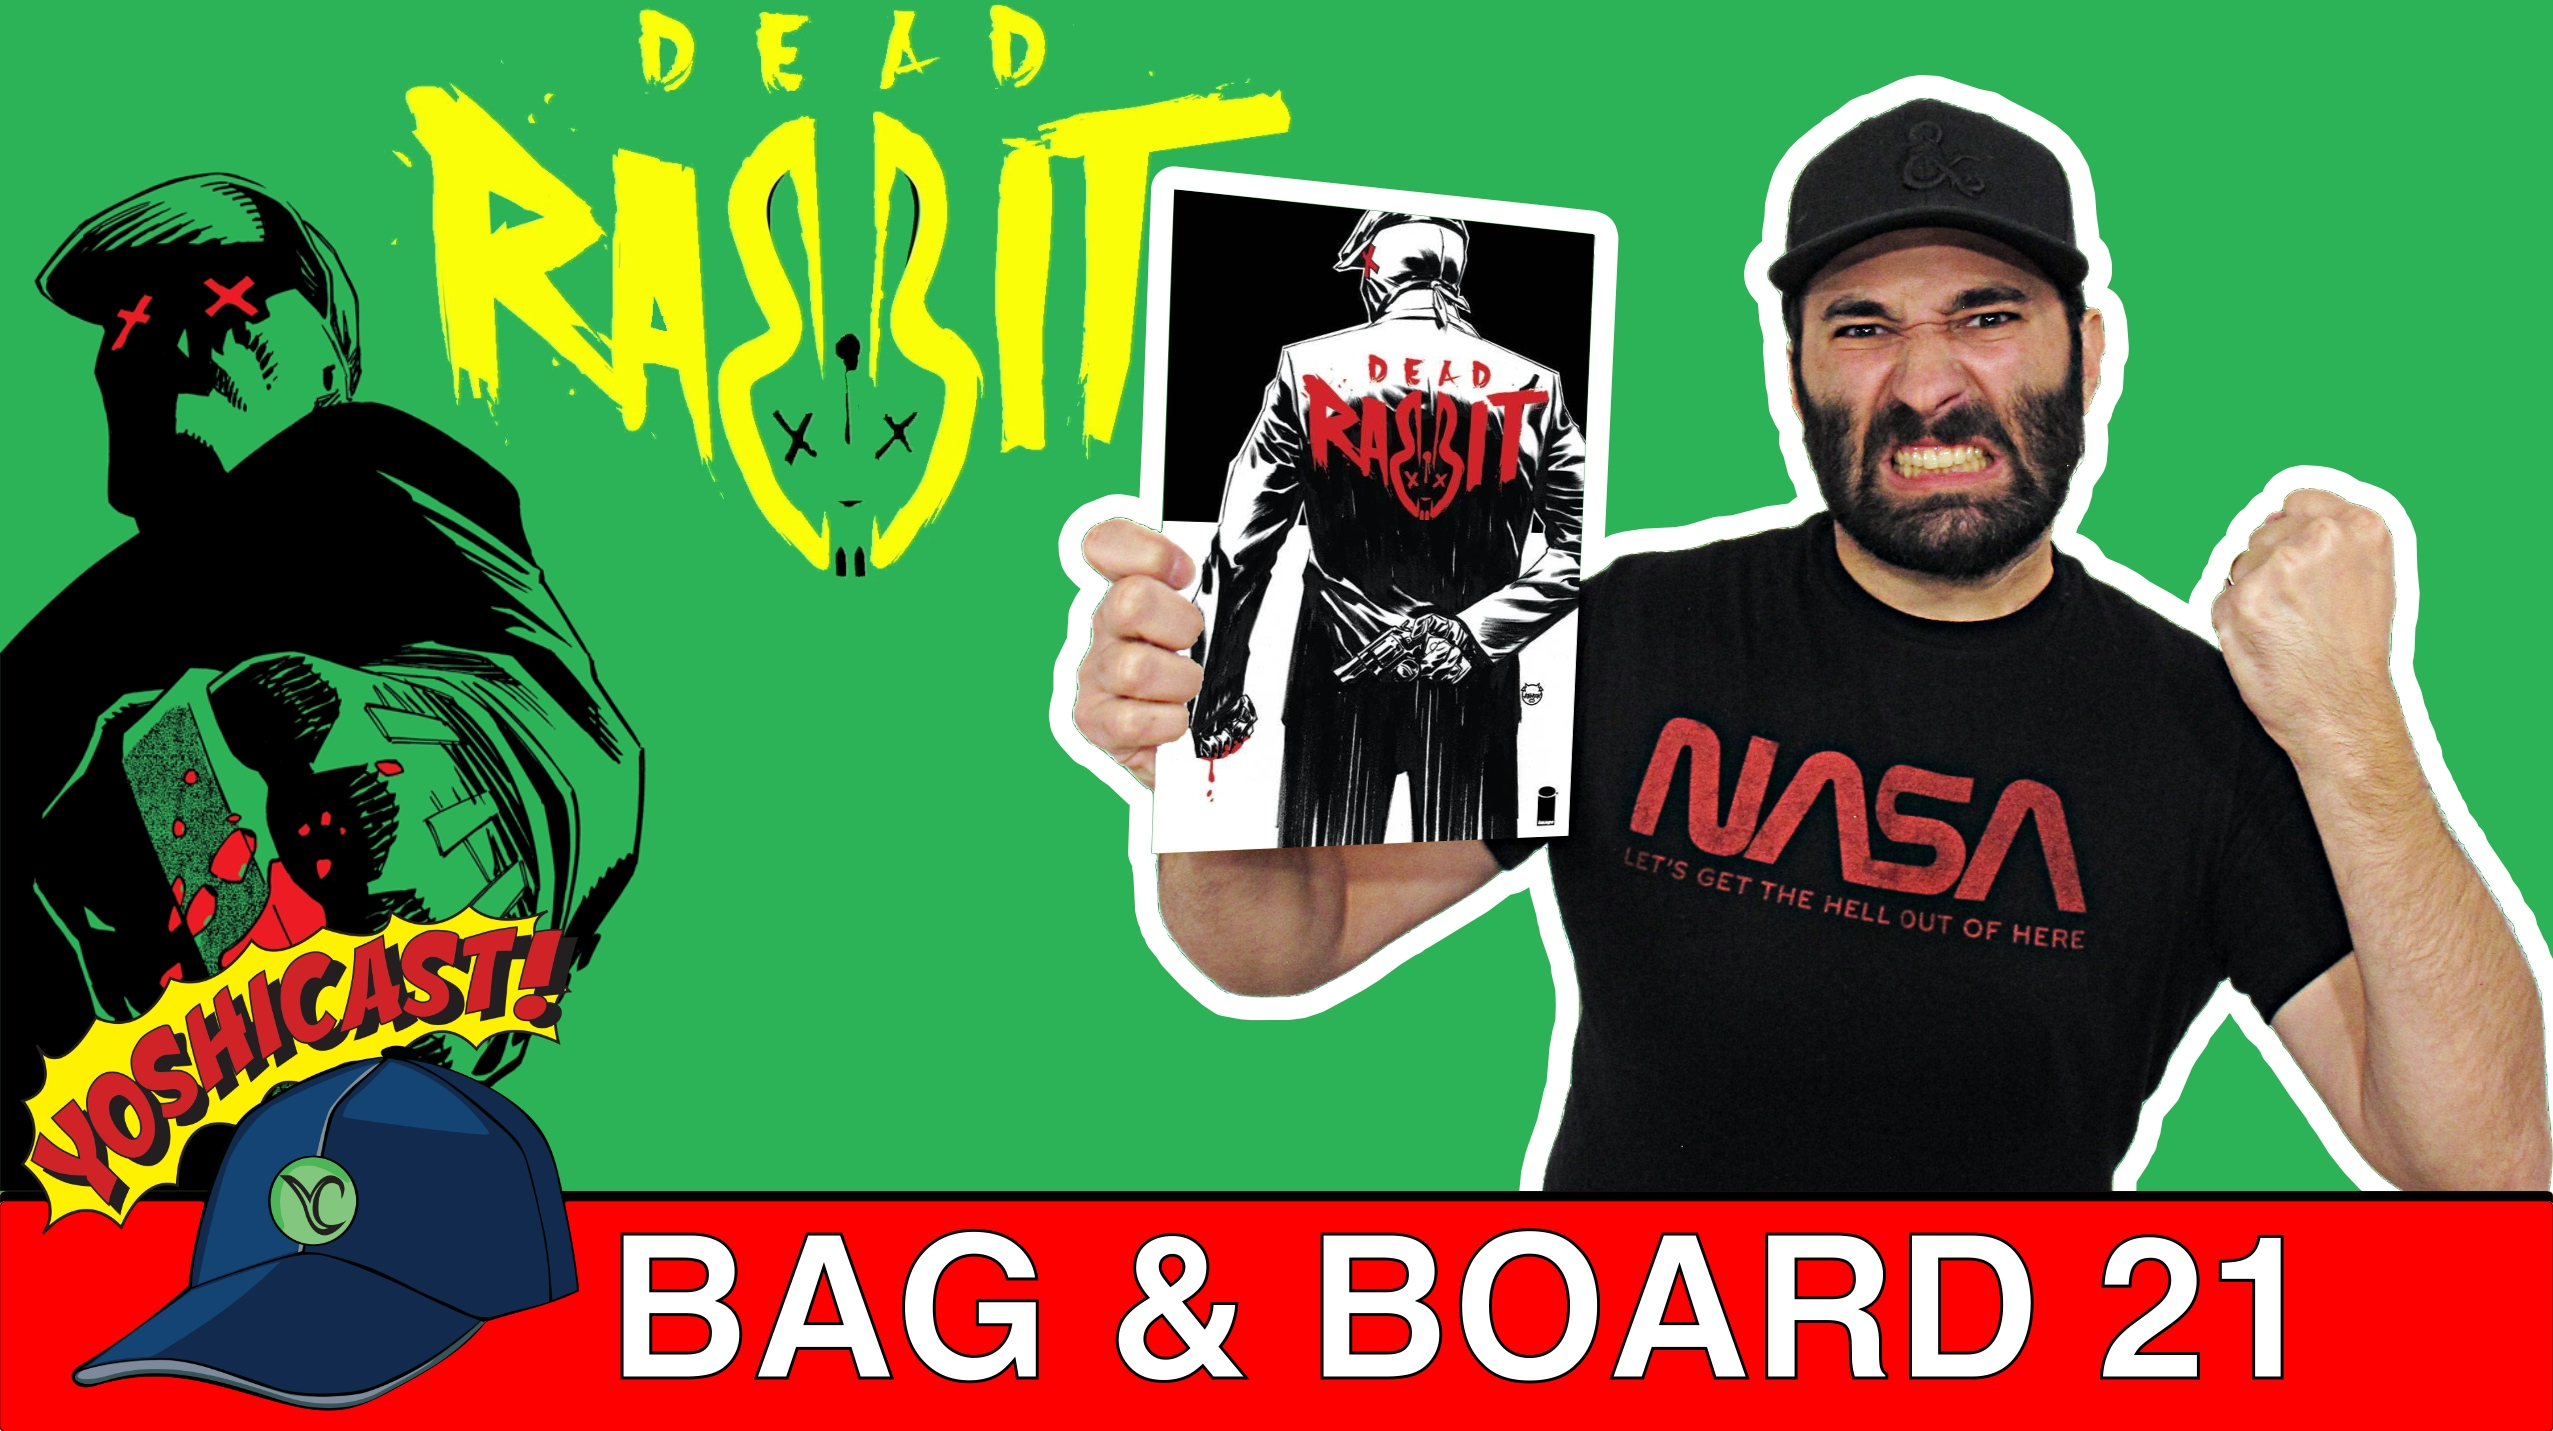 Bag & Board 21 | Dead Rabbit, Cosmic Ghost Rider, Sleepwalker, Lone Ranger, What If